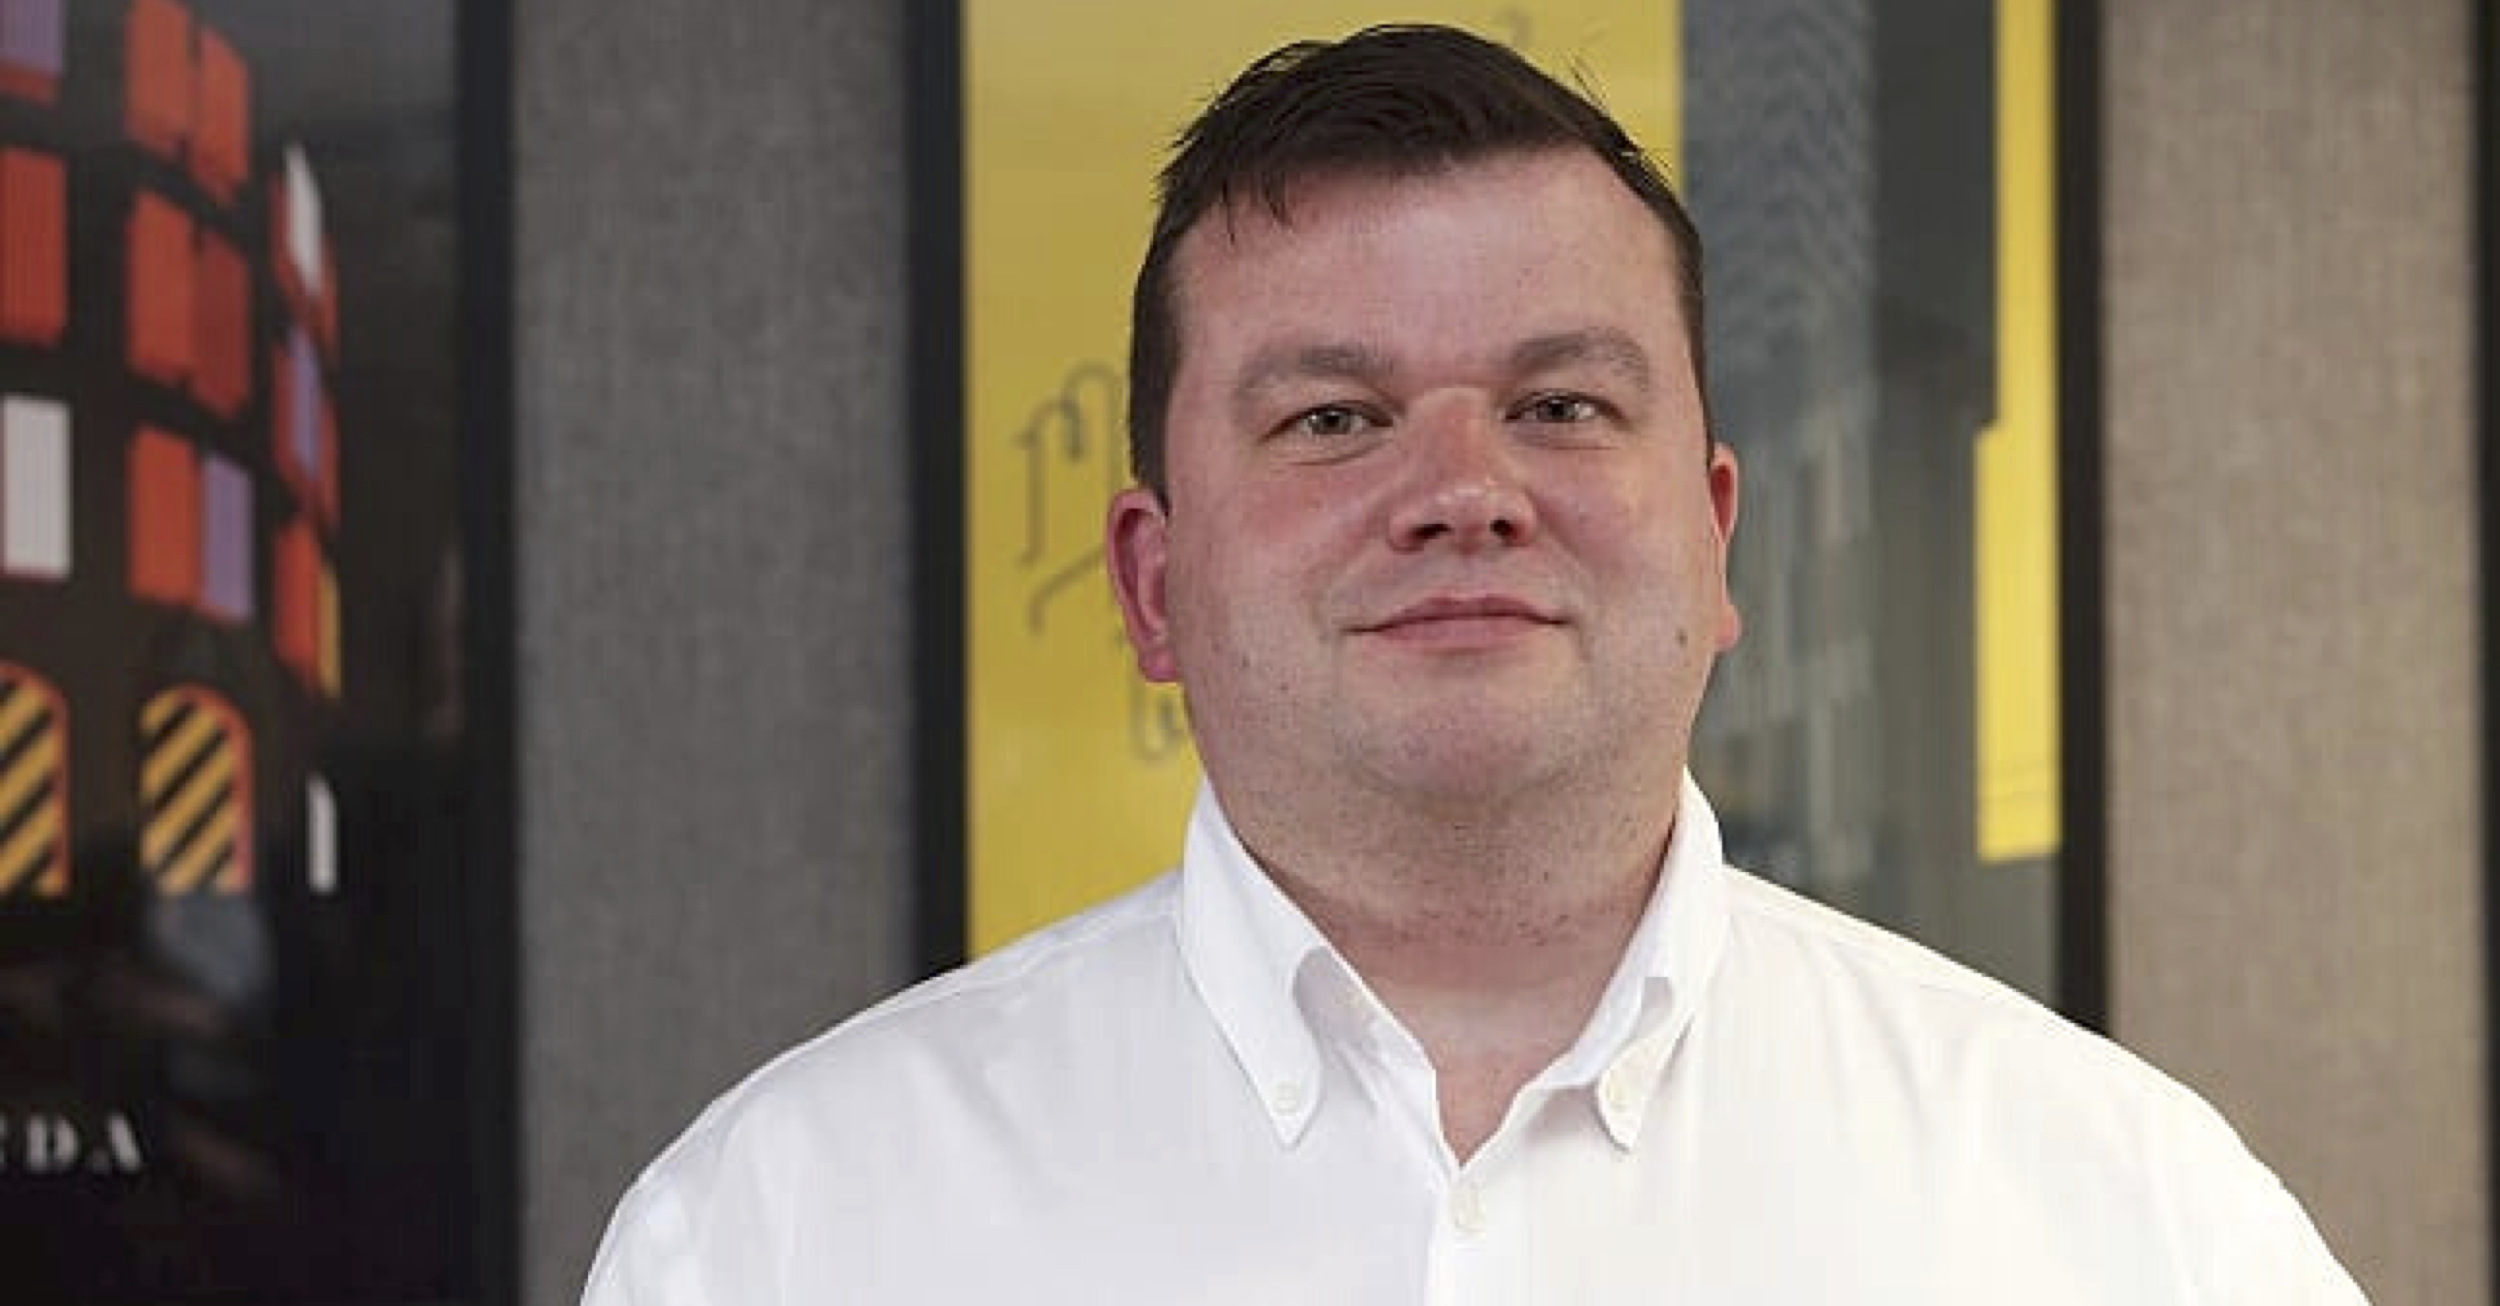 Stephen Hobson Appointed as Business Director at Datacentreplus